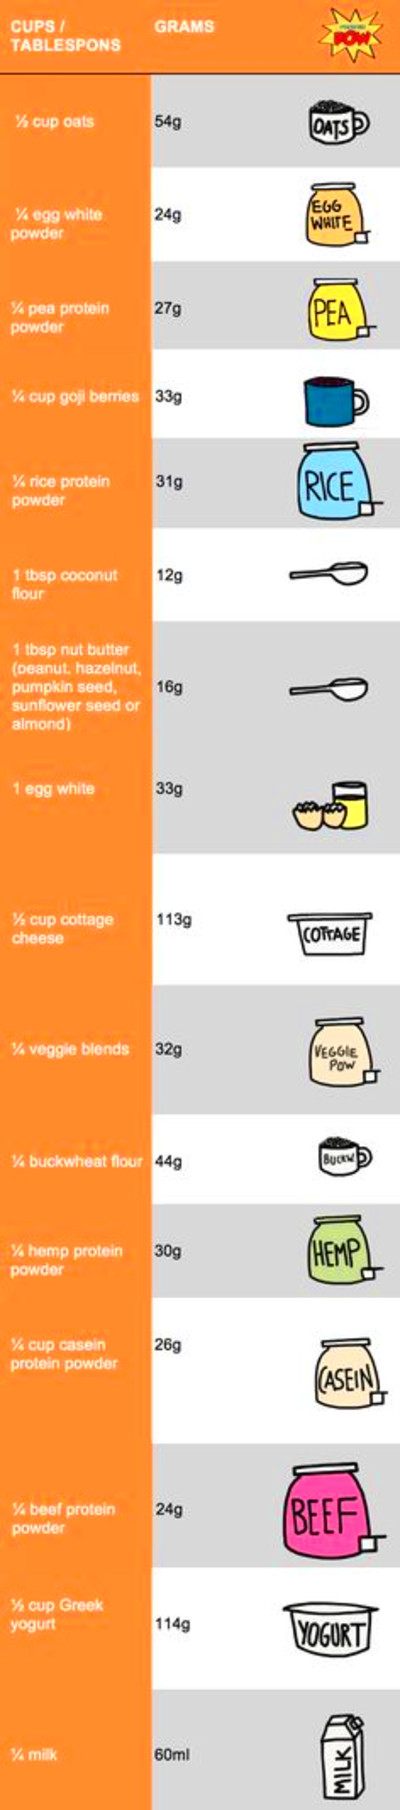 kitchen converter: pounds to grams, cups to ounces, F to C ...